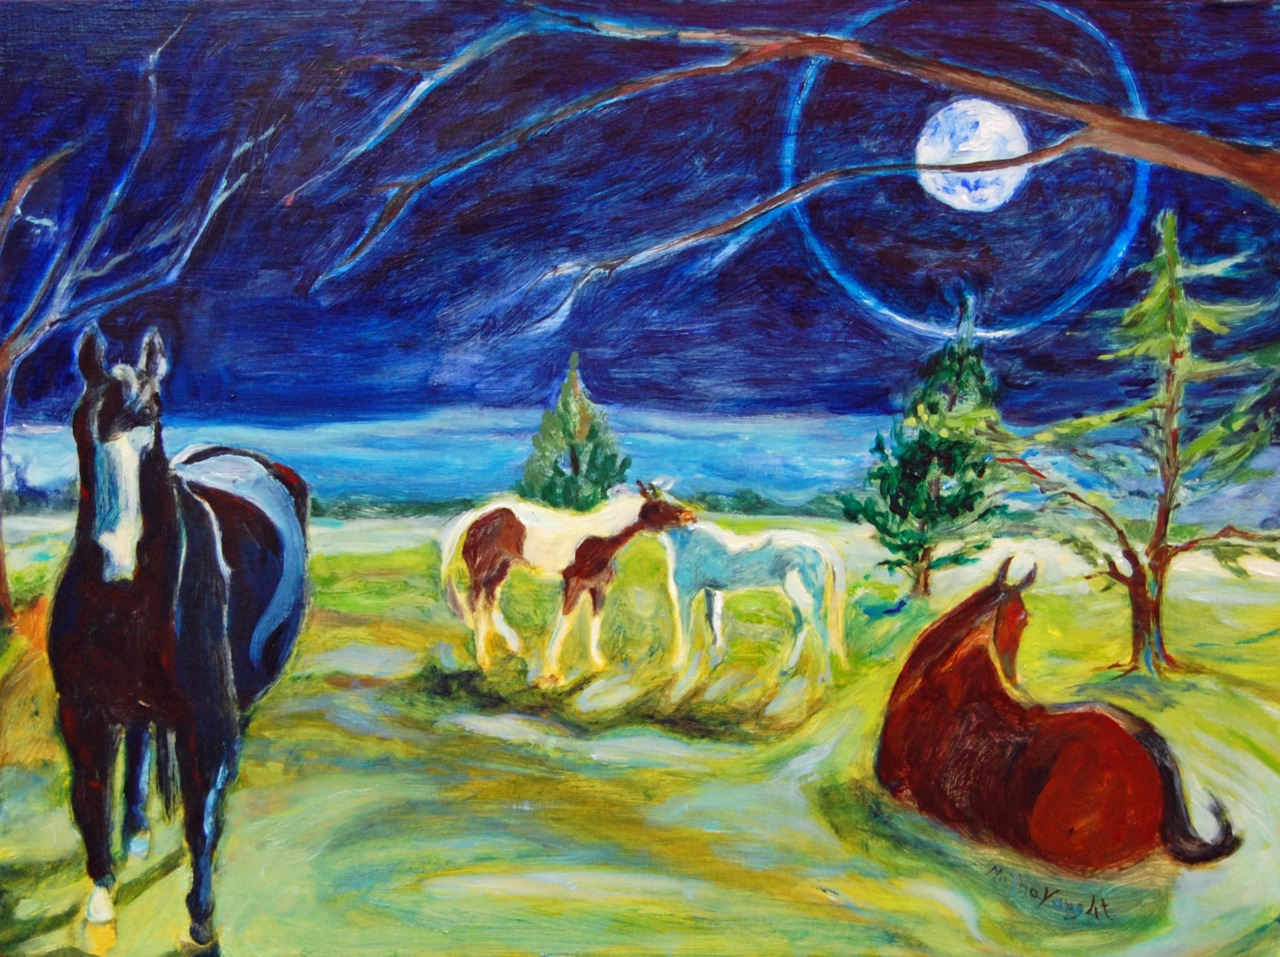 Equine Nocturne by Martha Lindenborg Vaught oil on panel Oct 2011